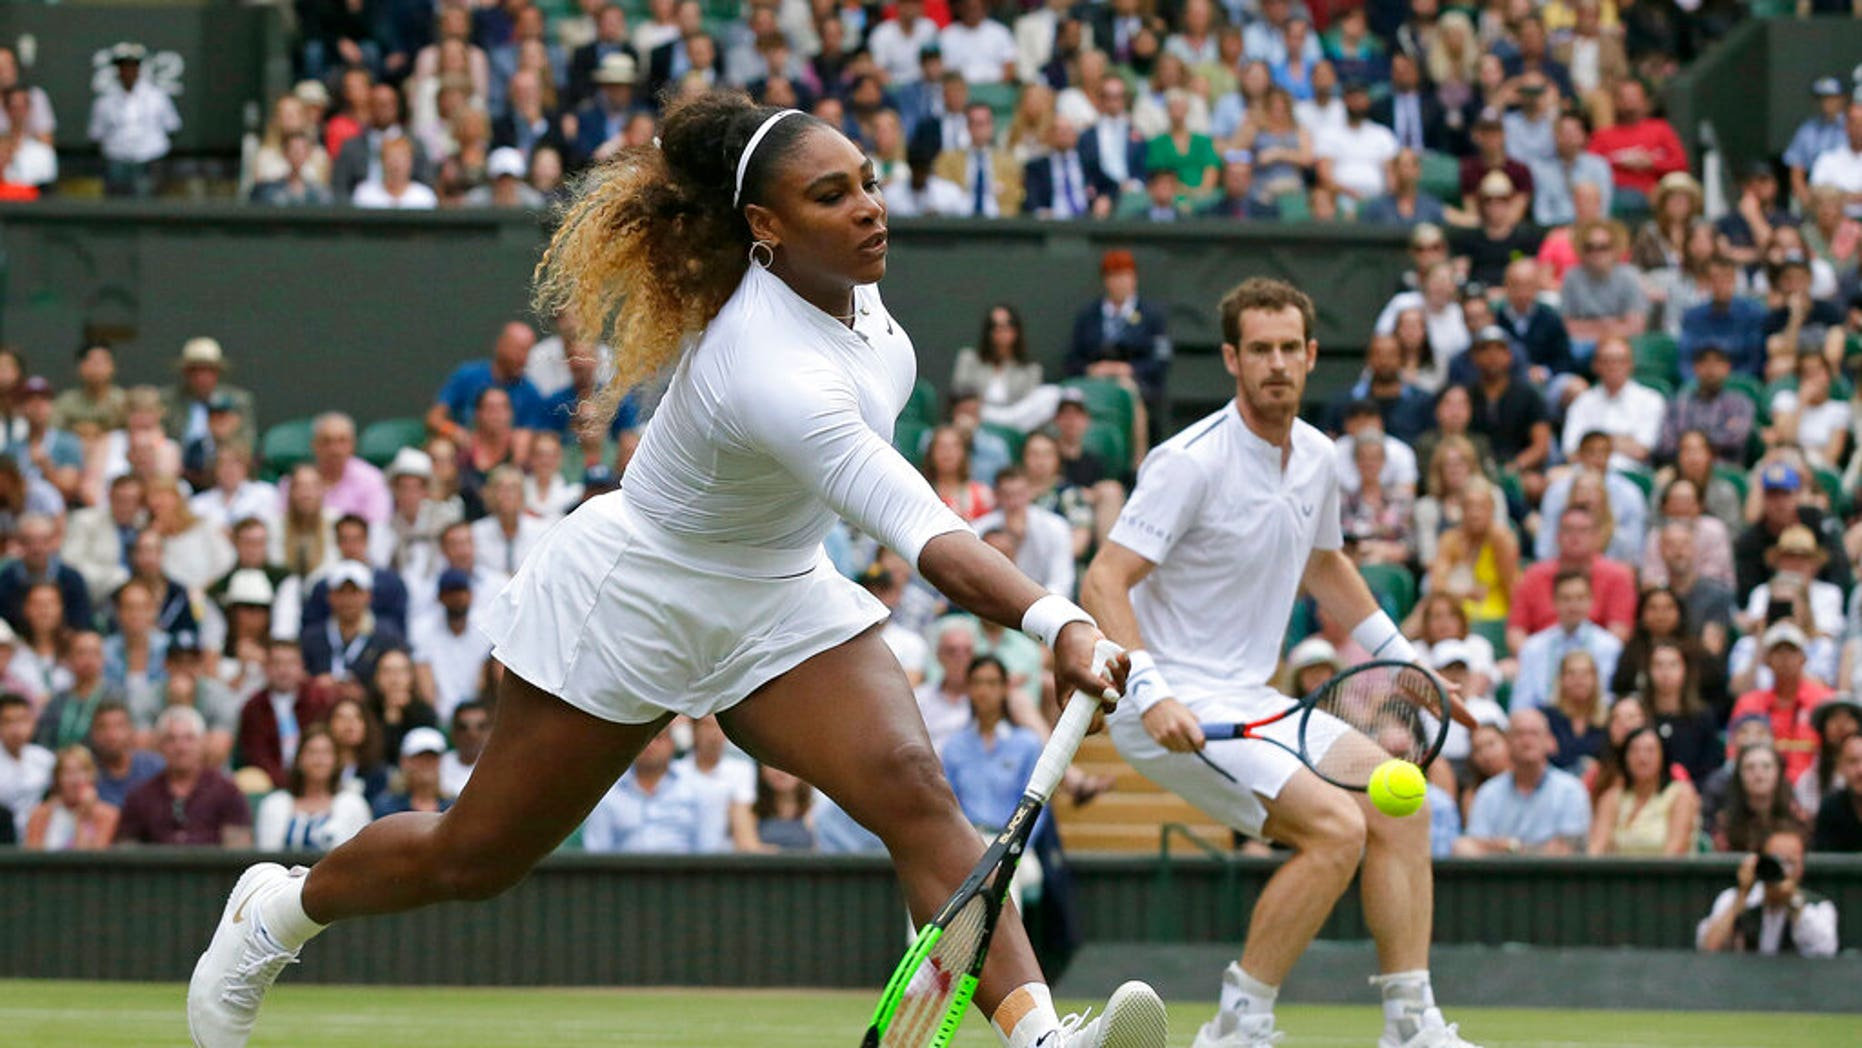 United States' Serena Williams, left, is watched by playing partner Andy Murray as she plays a shot during a mixed doubles match during day six of the Wimbledon Tennis Championships in London, Saturday, July 6, 2019. (AP Photo/Tim Ireland)